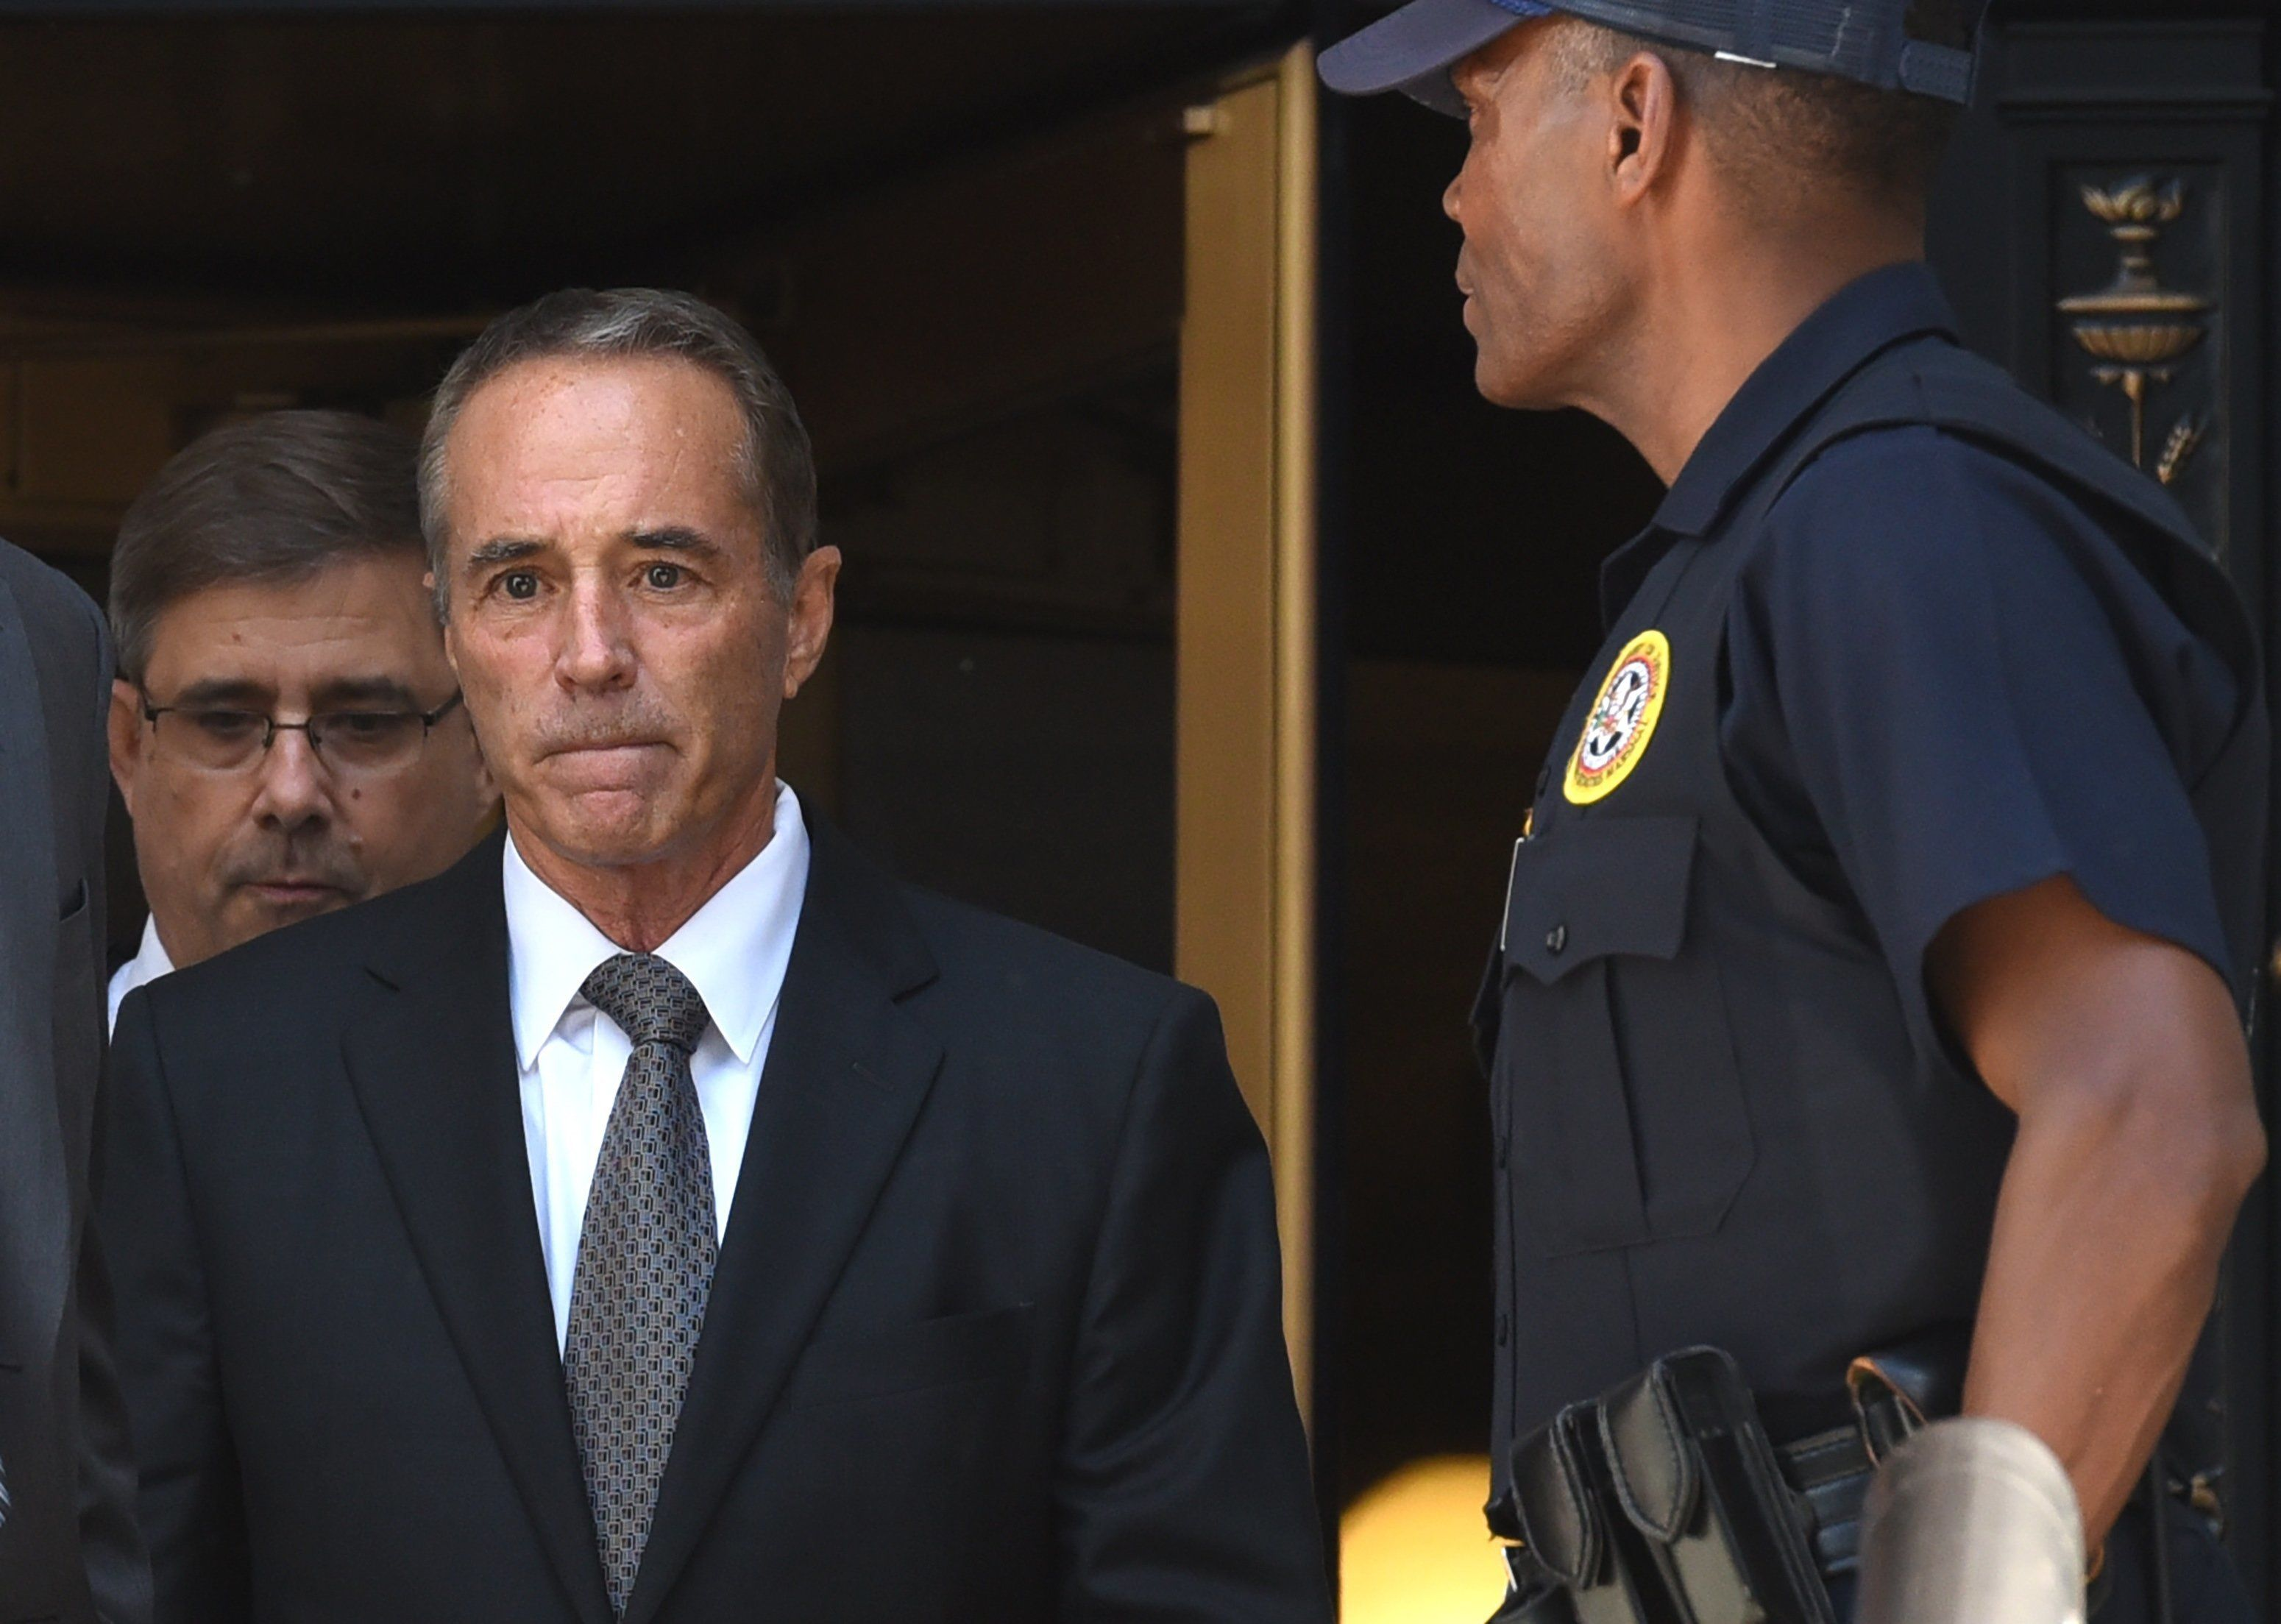 US Representative Chris Collins (L), a Republican from the of the 27th Congressional District of New York, leaves US Federal Court in New York on August 8, 2018 after being indicted on insider trading - Collins, one of the first US lawmakers to declare support for Donald Trump's presidential candidacy, was indicted by federal prosecutors Wednesday on charges of securities fraud connected to an alleged insider trading scheme. (Photo by TIMOTHY A. CLARY / AFP)        (Photo credit should read TIMOTHY A. CLARY/AFP/Getty Images)